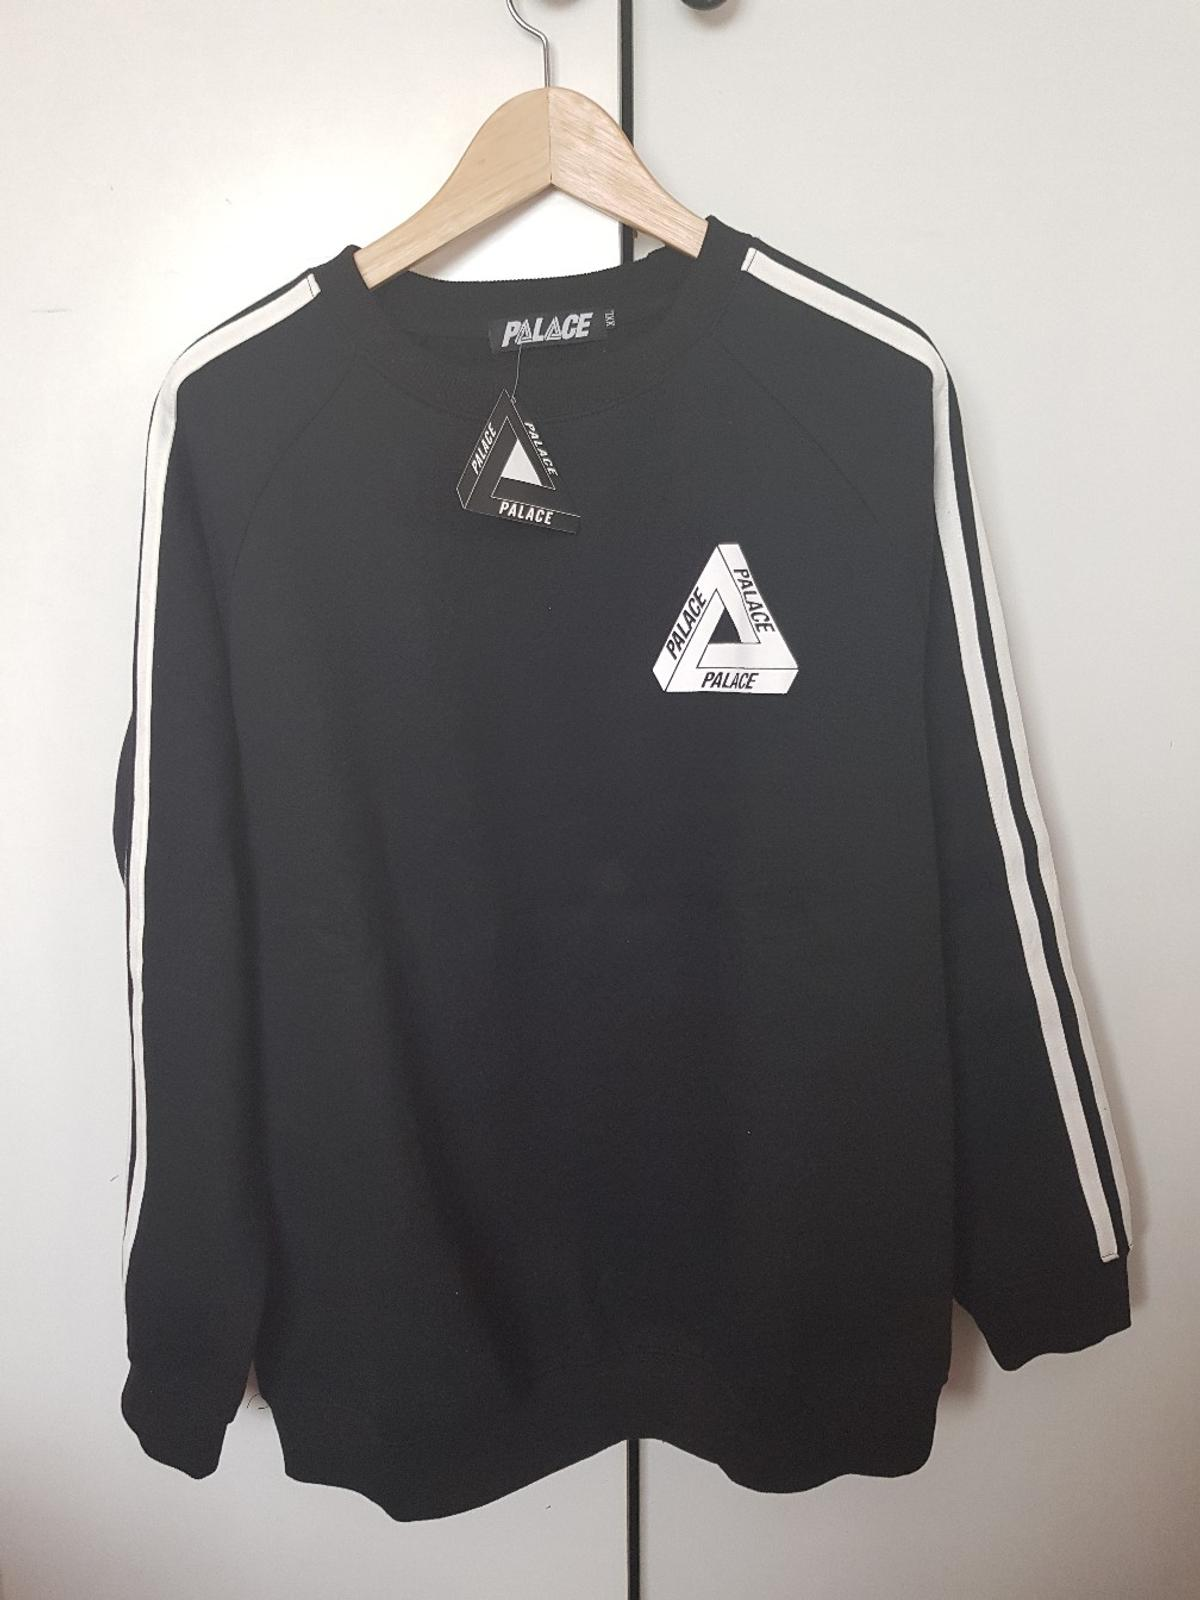 Palace x Adidas Tri Ferg Jumper Sweater